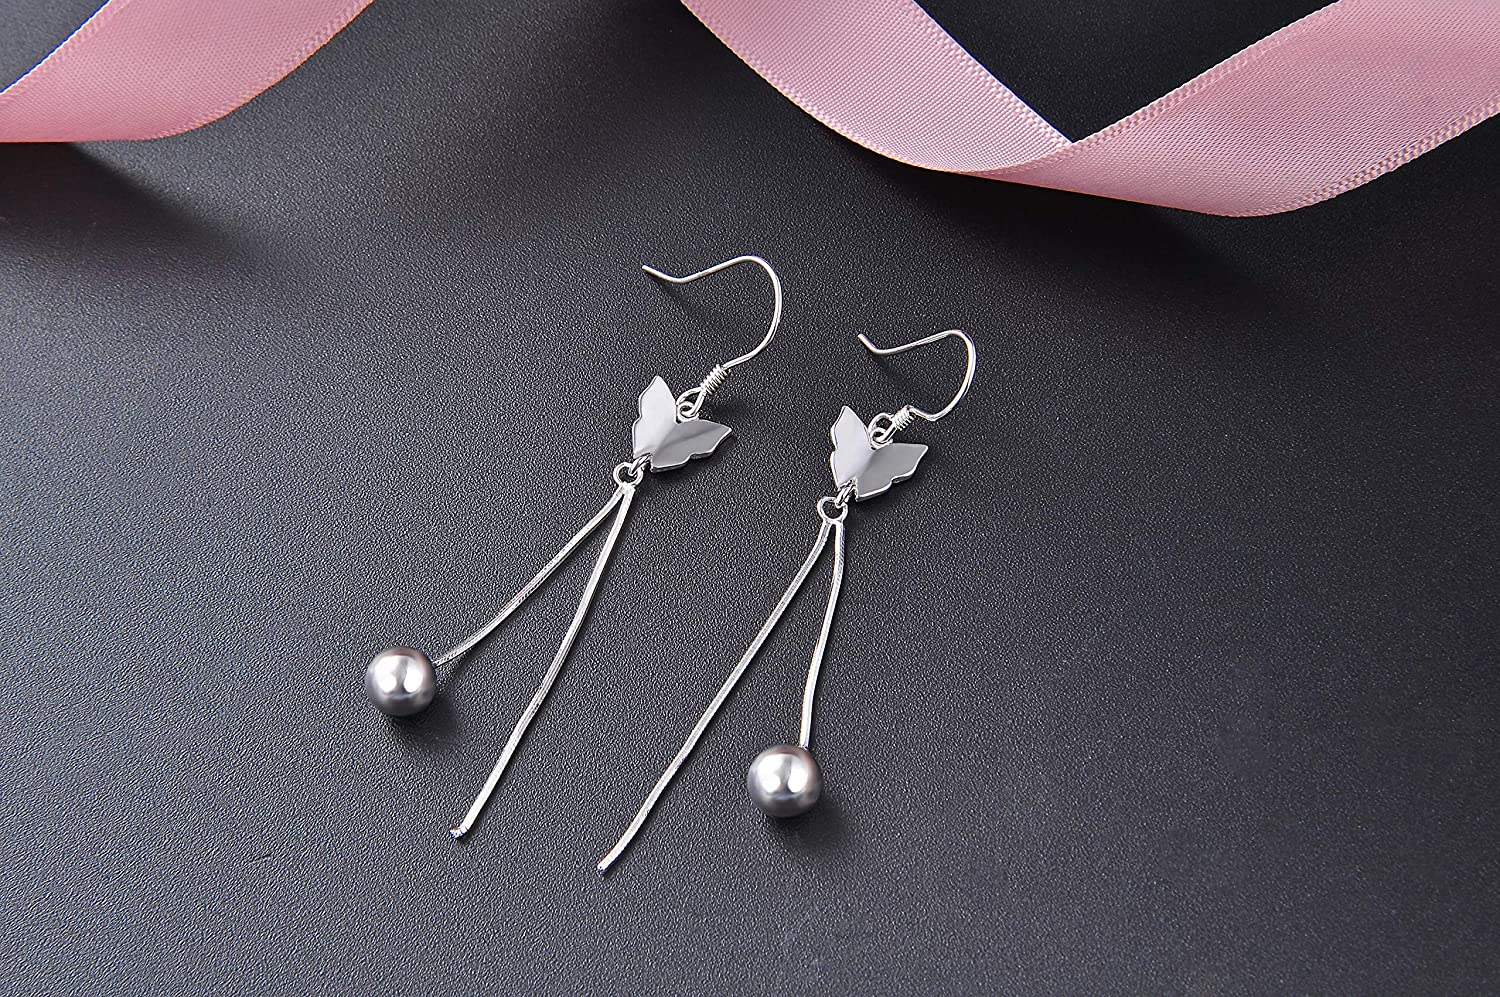 FHX New Pure and Fresh 925 Sterling Silver Butterfly Ball Ms Fashion Accessories Long-Style Earrings Drop /& Dangle Earrings for Women Girls Gift.